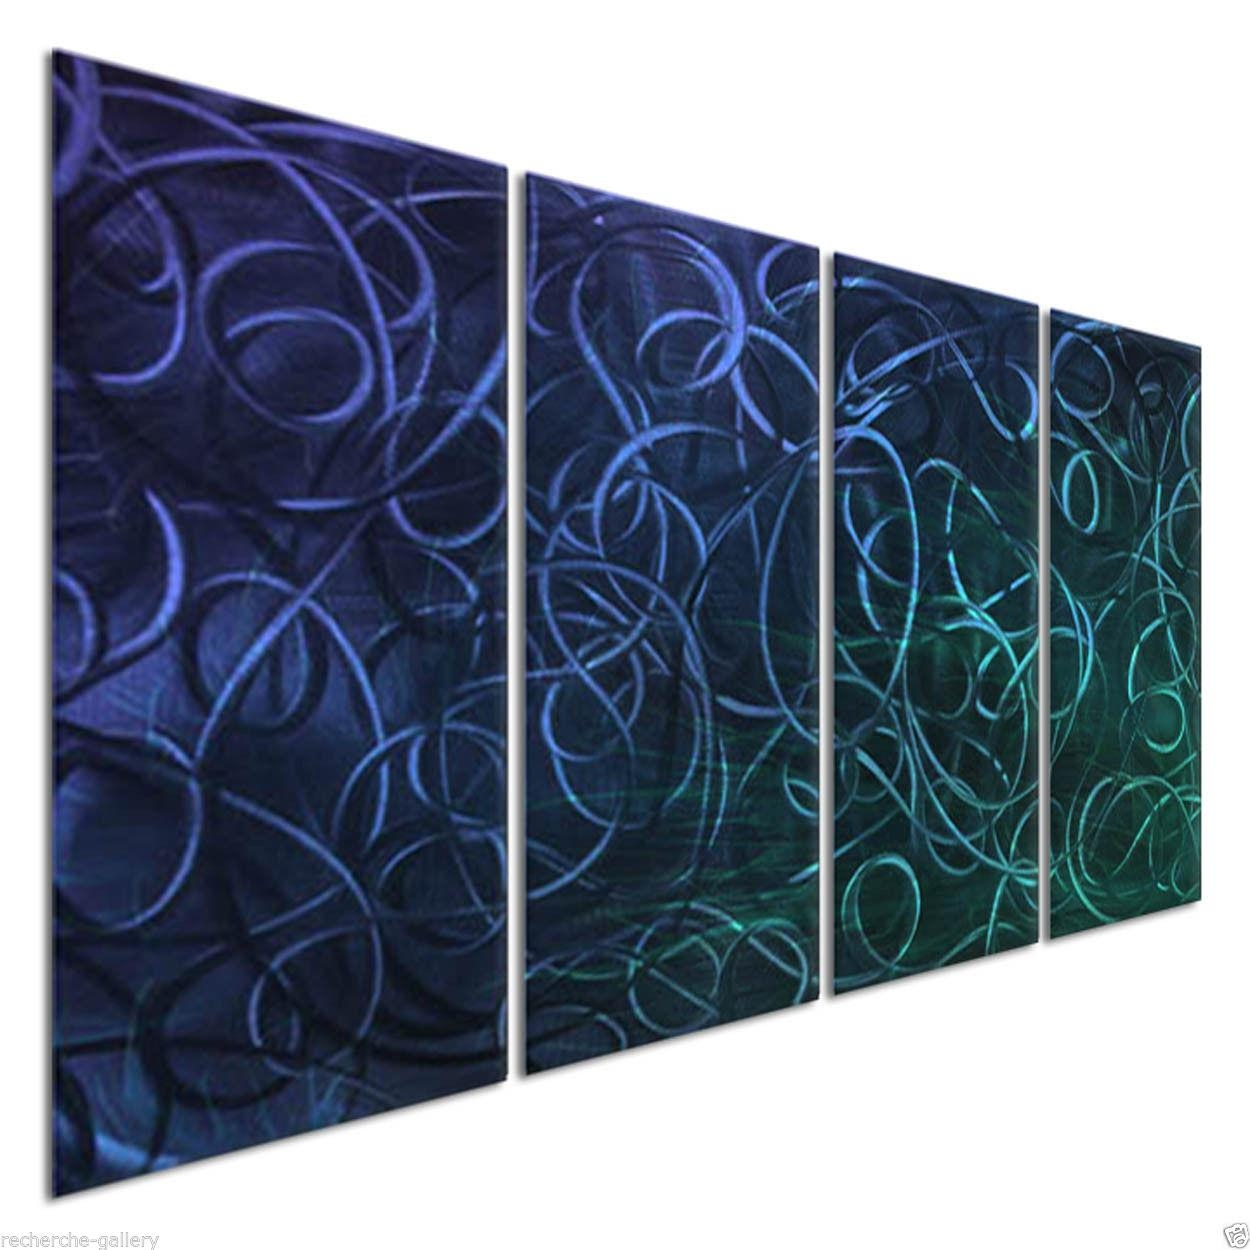 Abstract Painting On Metal Wall Sculpture Art Blue Pandemonium Iii Within Ash Carl Metal Wall Art (Image 1 of 20)